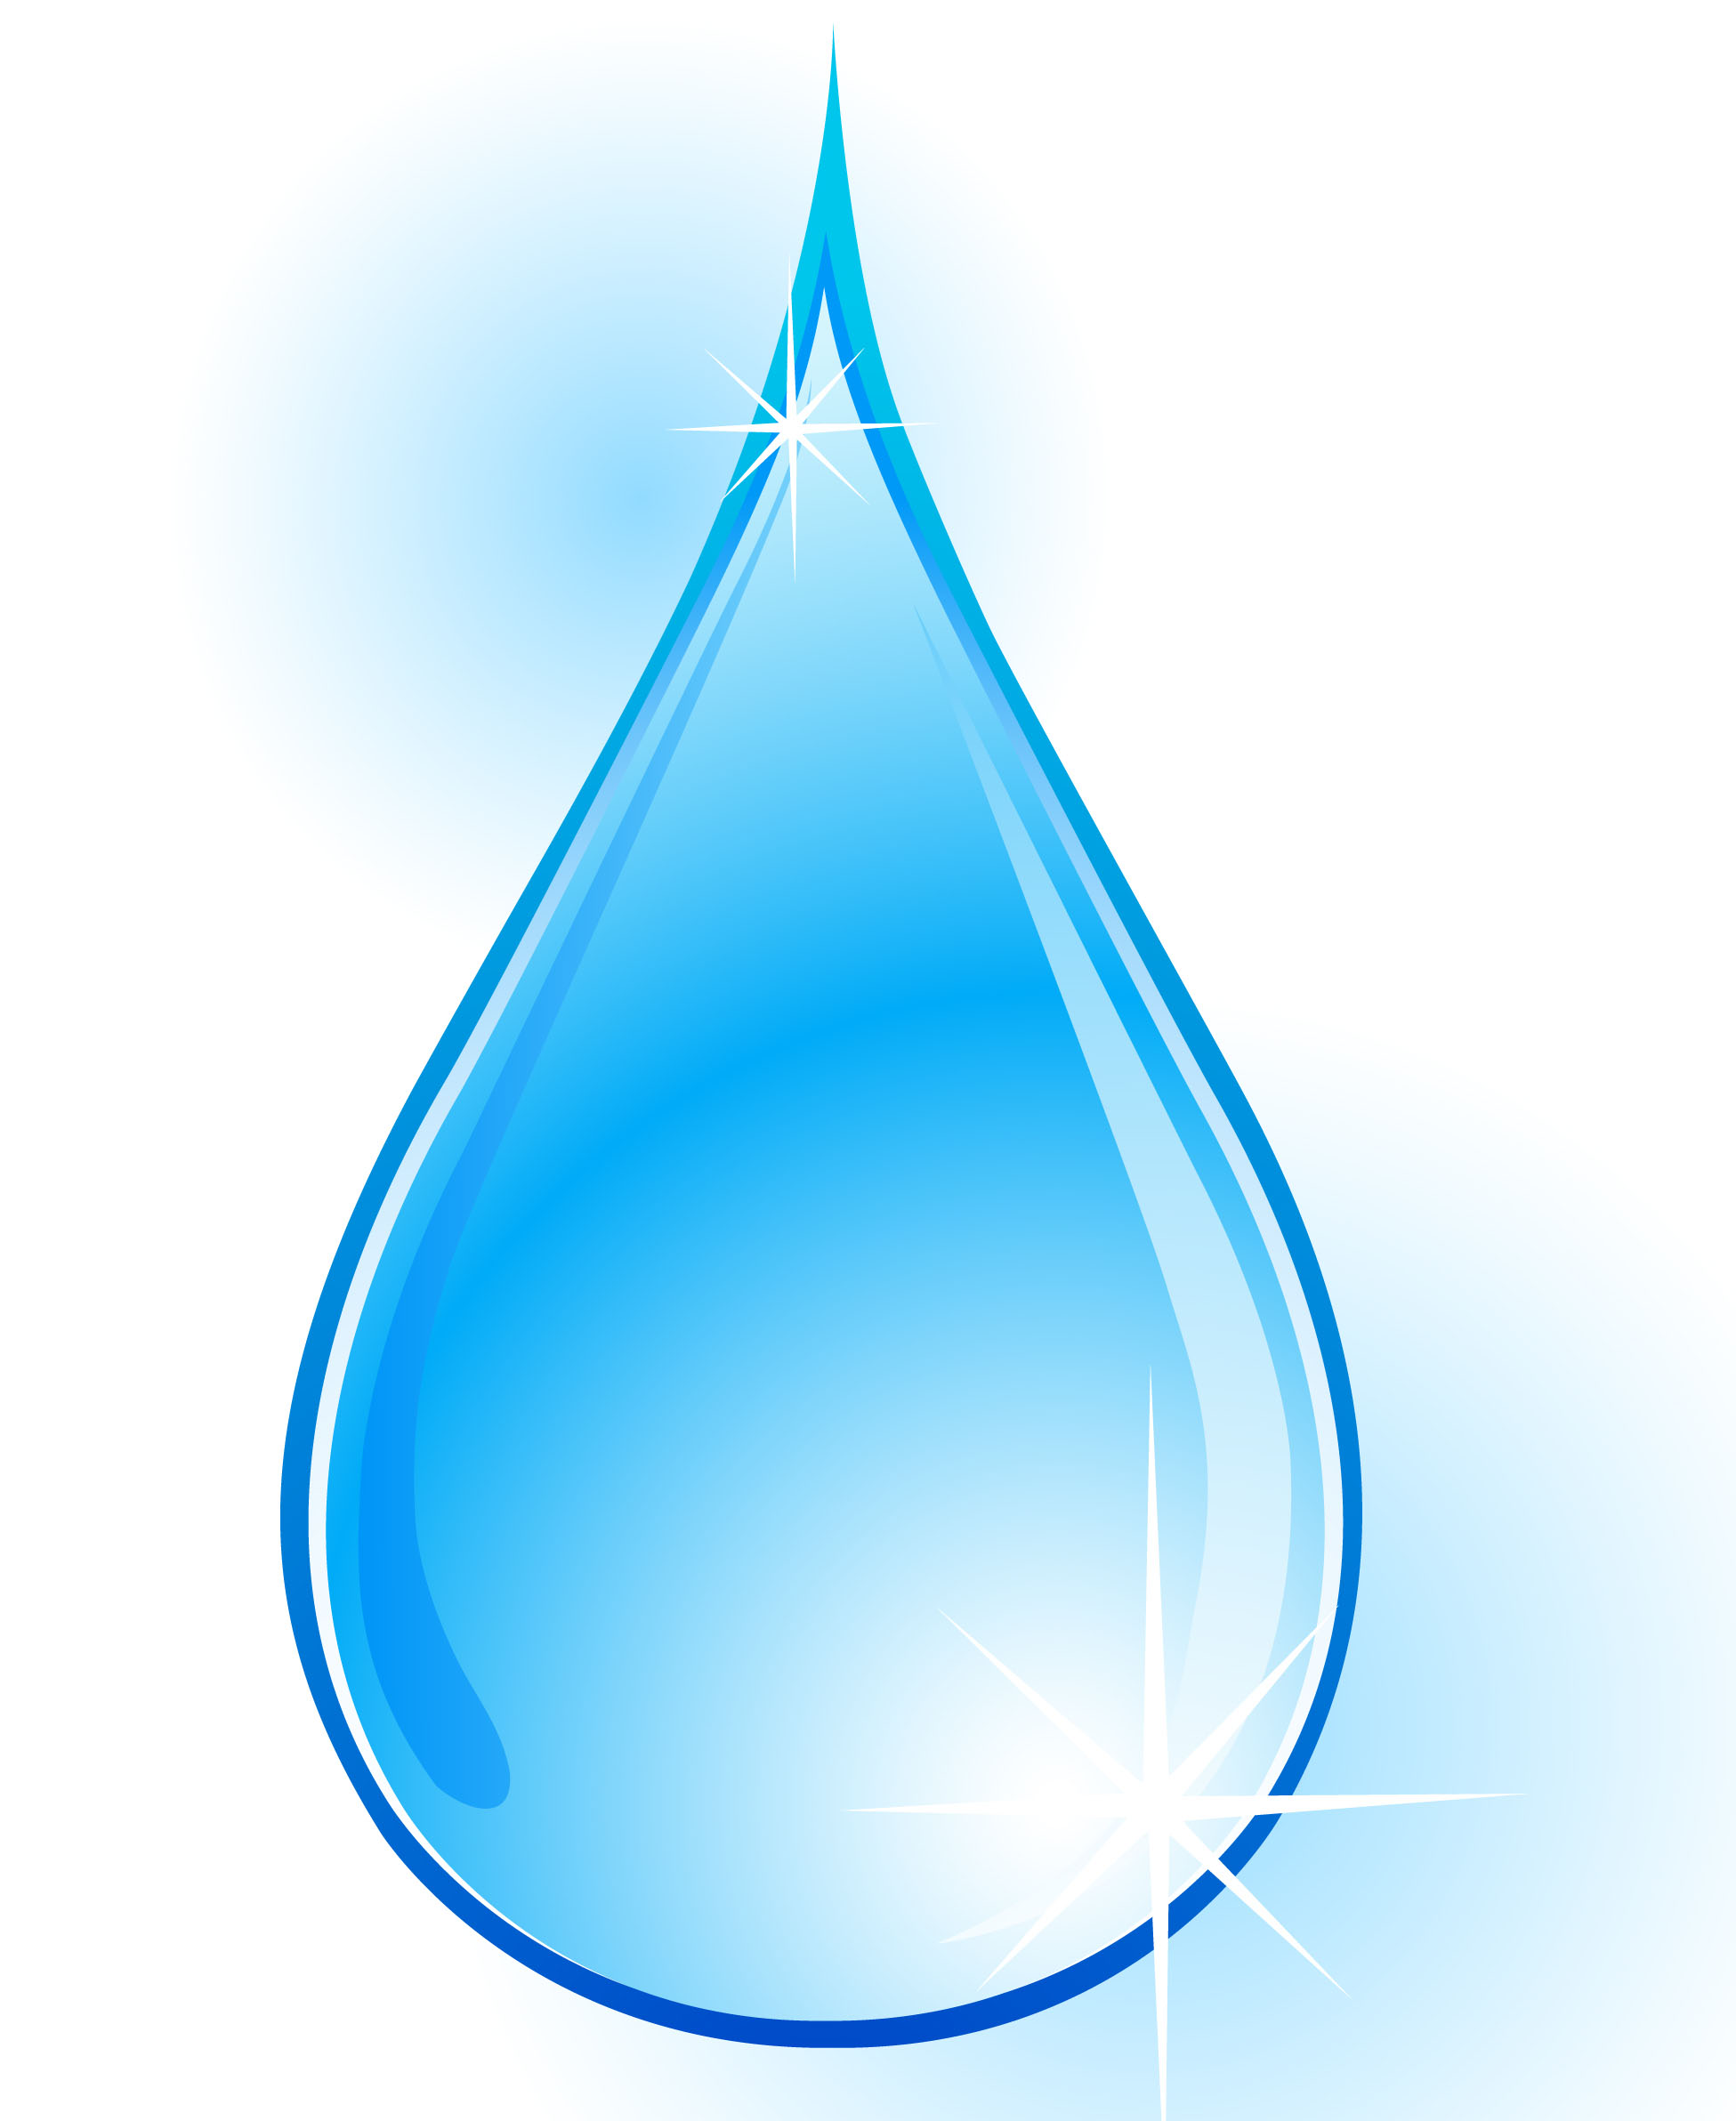 Liquid clipart teardrop Clipart Free Download Library on